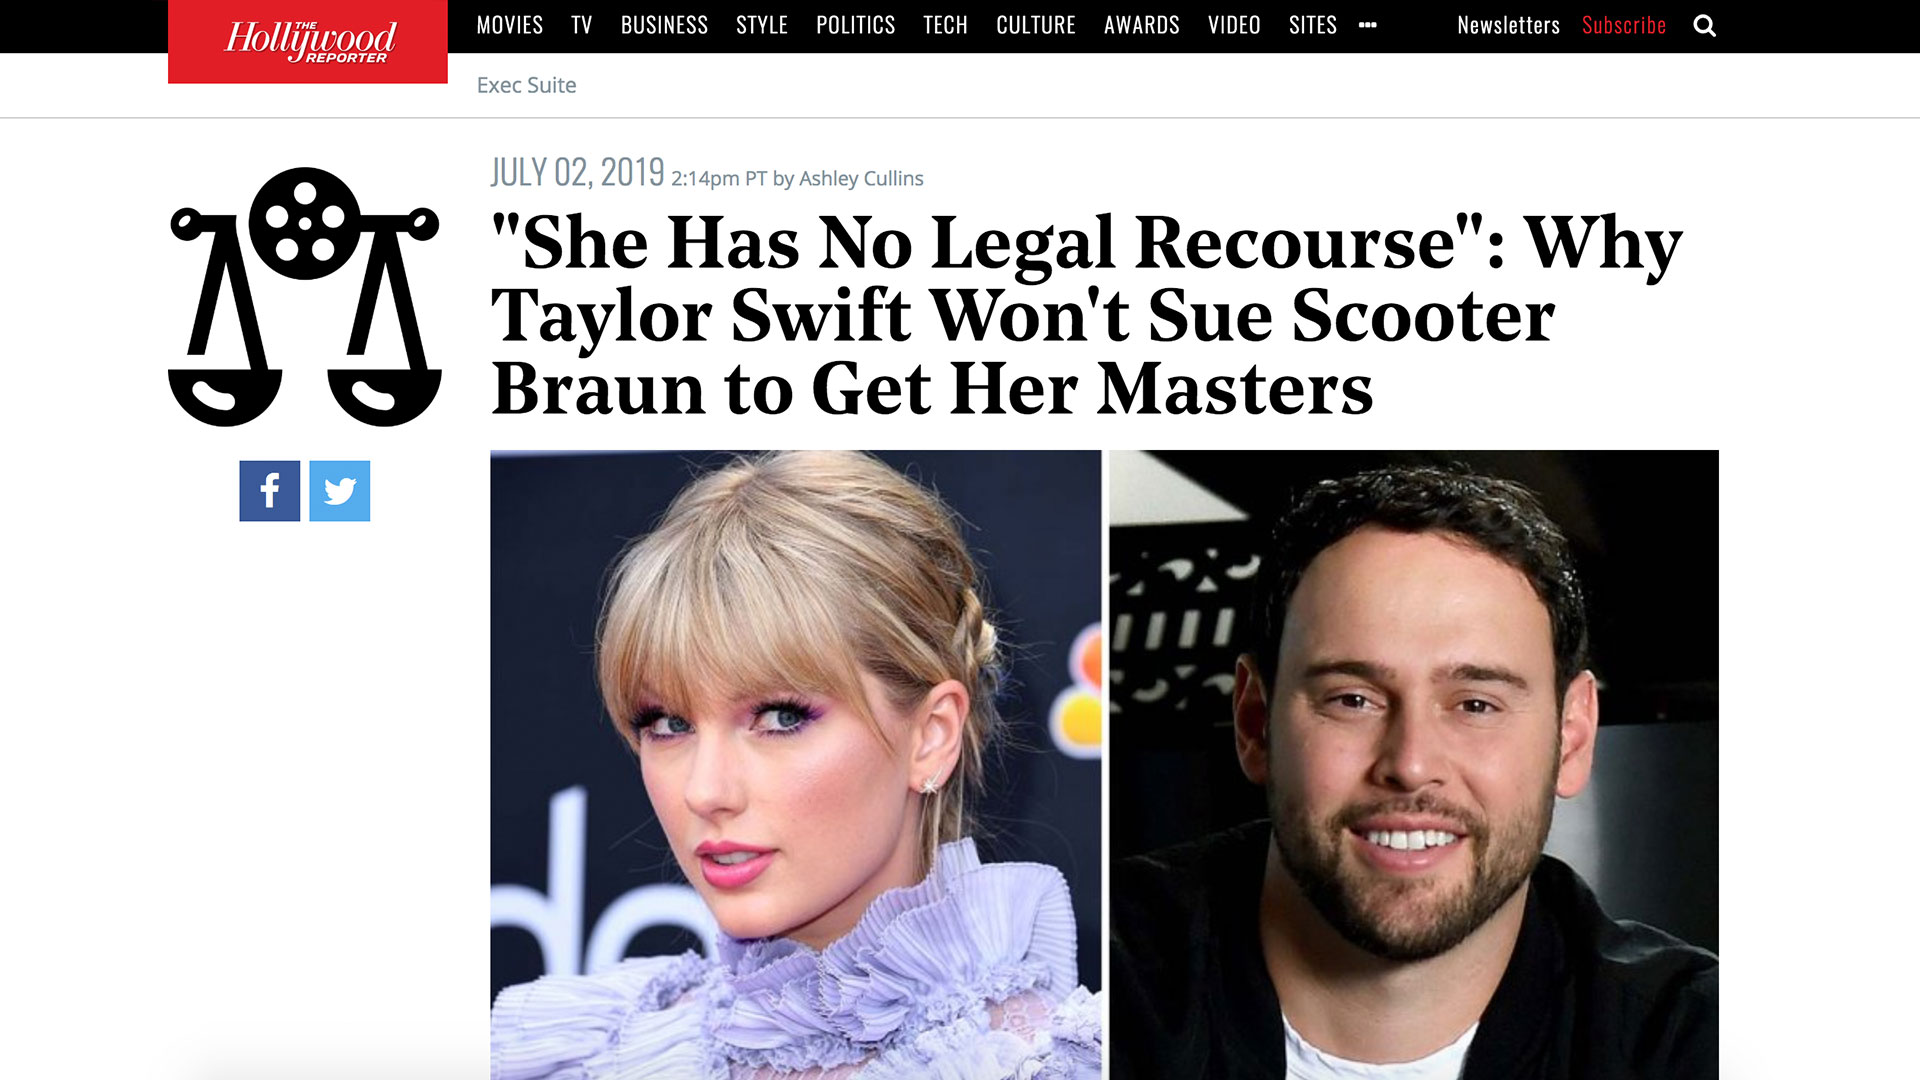 """Fairness Rocks News """"She Has No Legal Recourse"""": Why Taylor Swift Won't Sue Scooter Braun to Get Her Masters"""